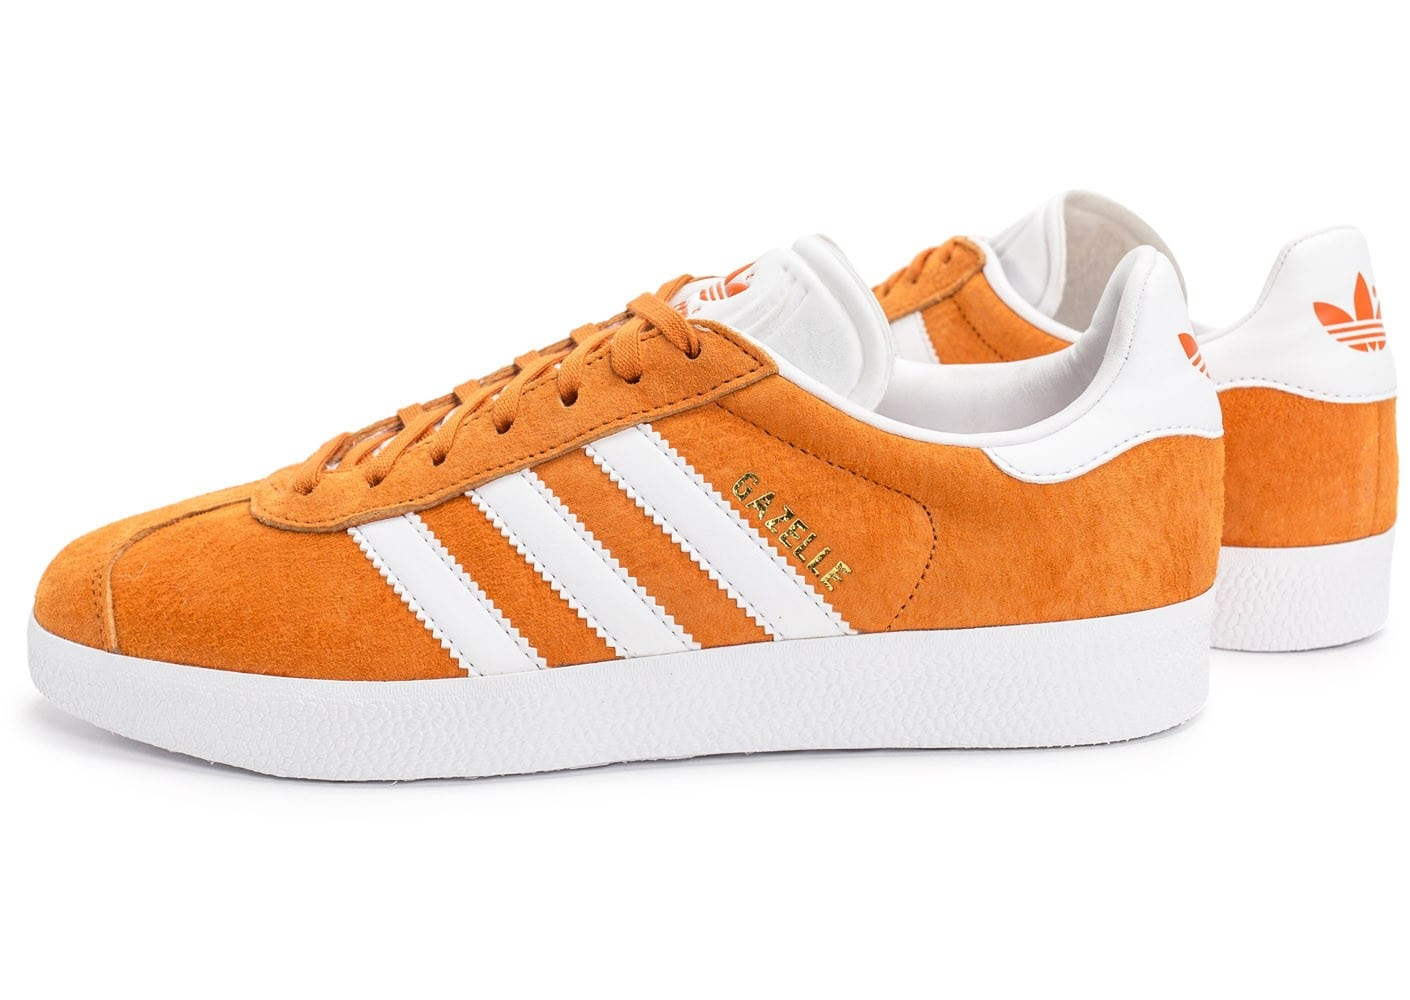 Baskets Adidas Gazelle Orange DkzuWc,